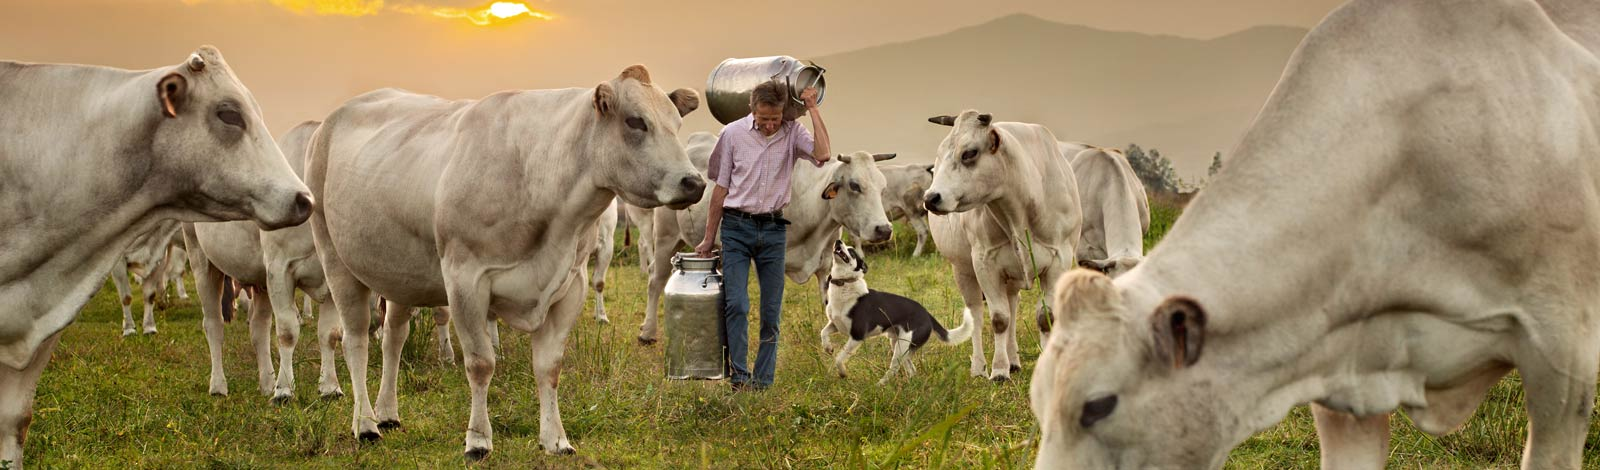 Milk and farmers